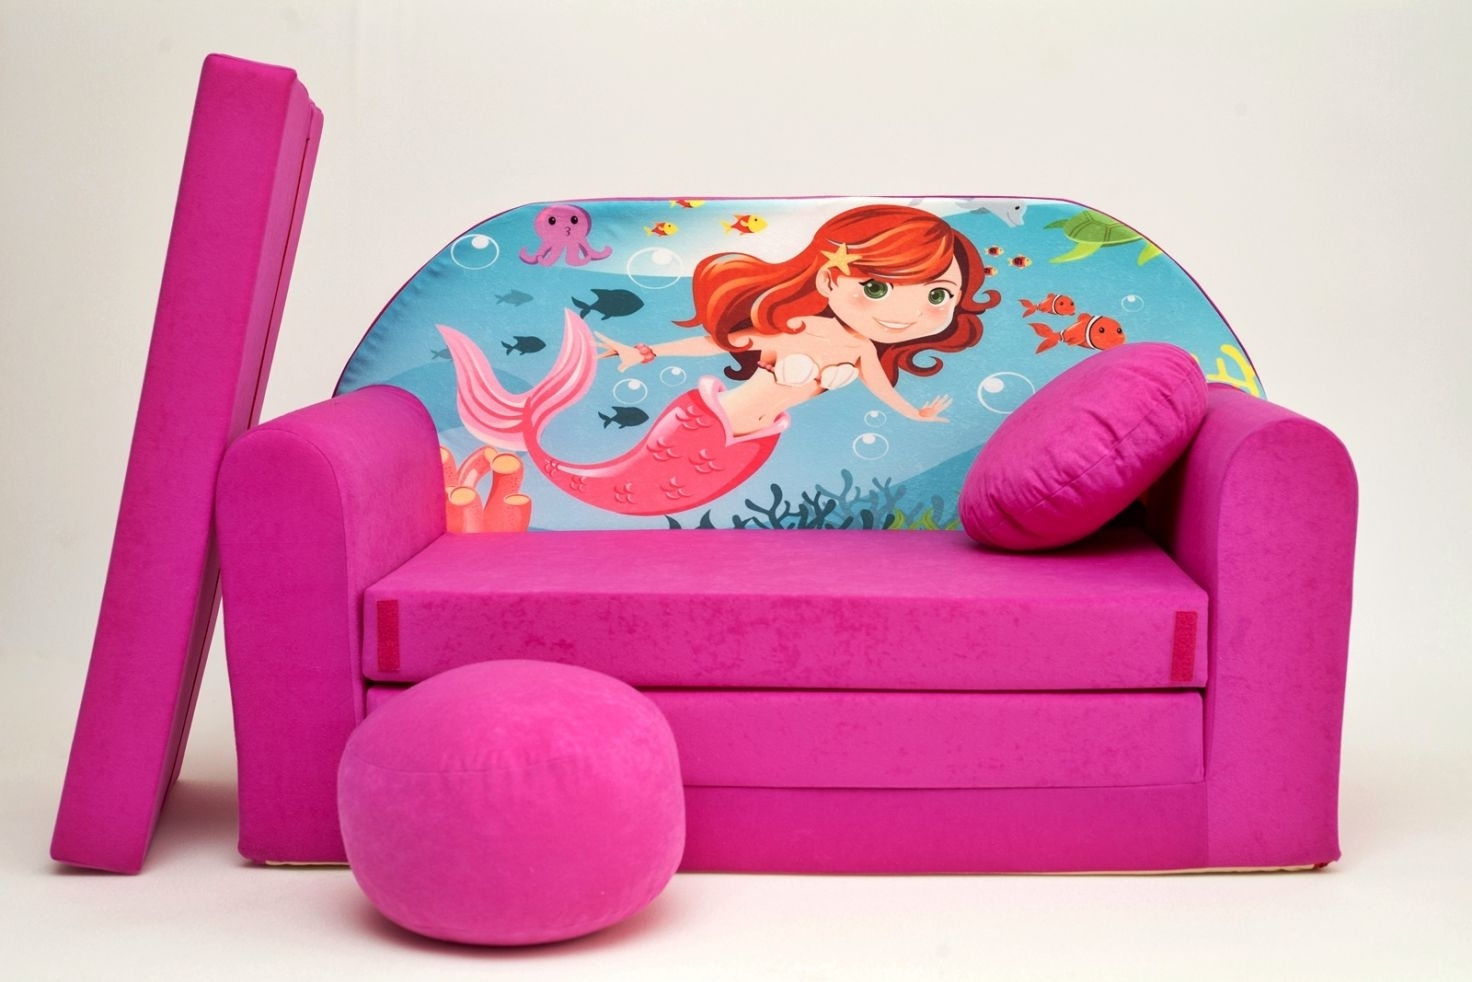 Childrens Sofas Throughout Well Known Baby Sofas Uk #3 Childrens Sofas 37 With Childrens Sofas (View 5 of 20)